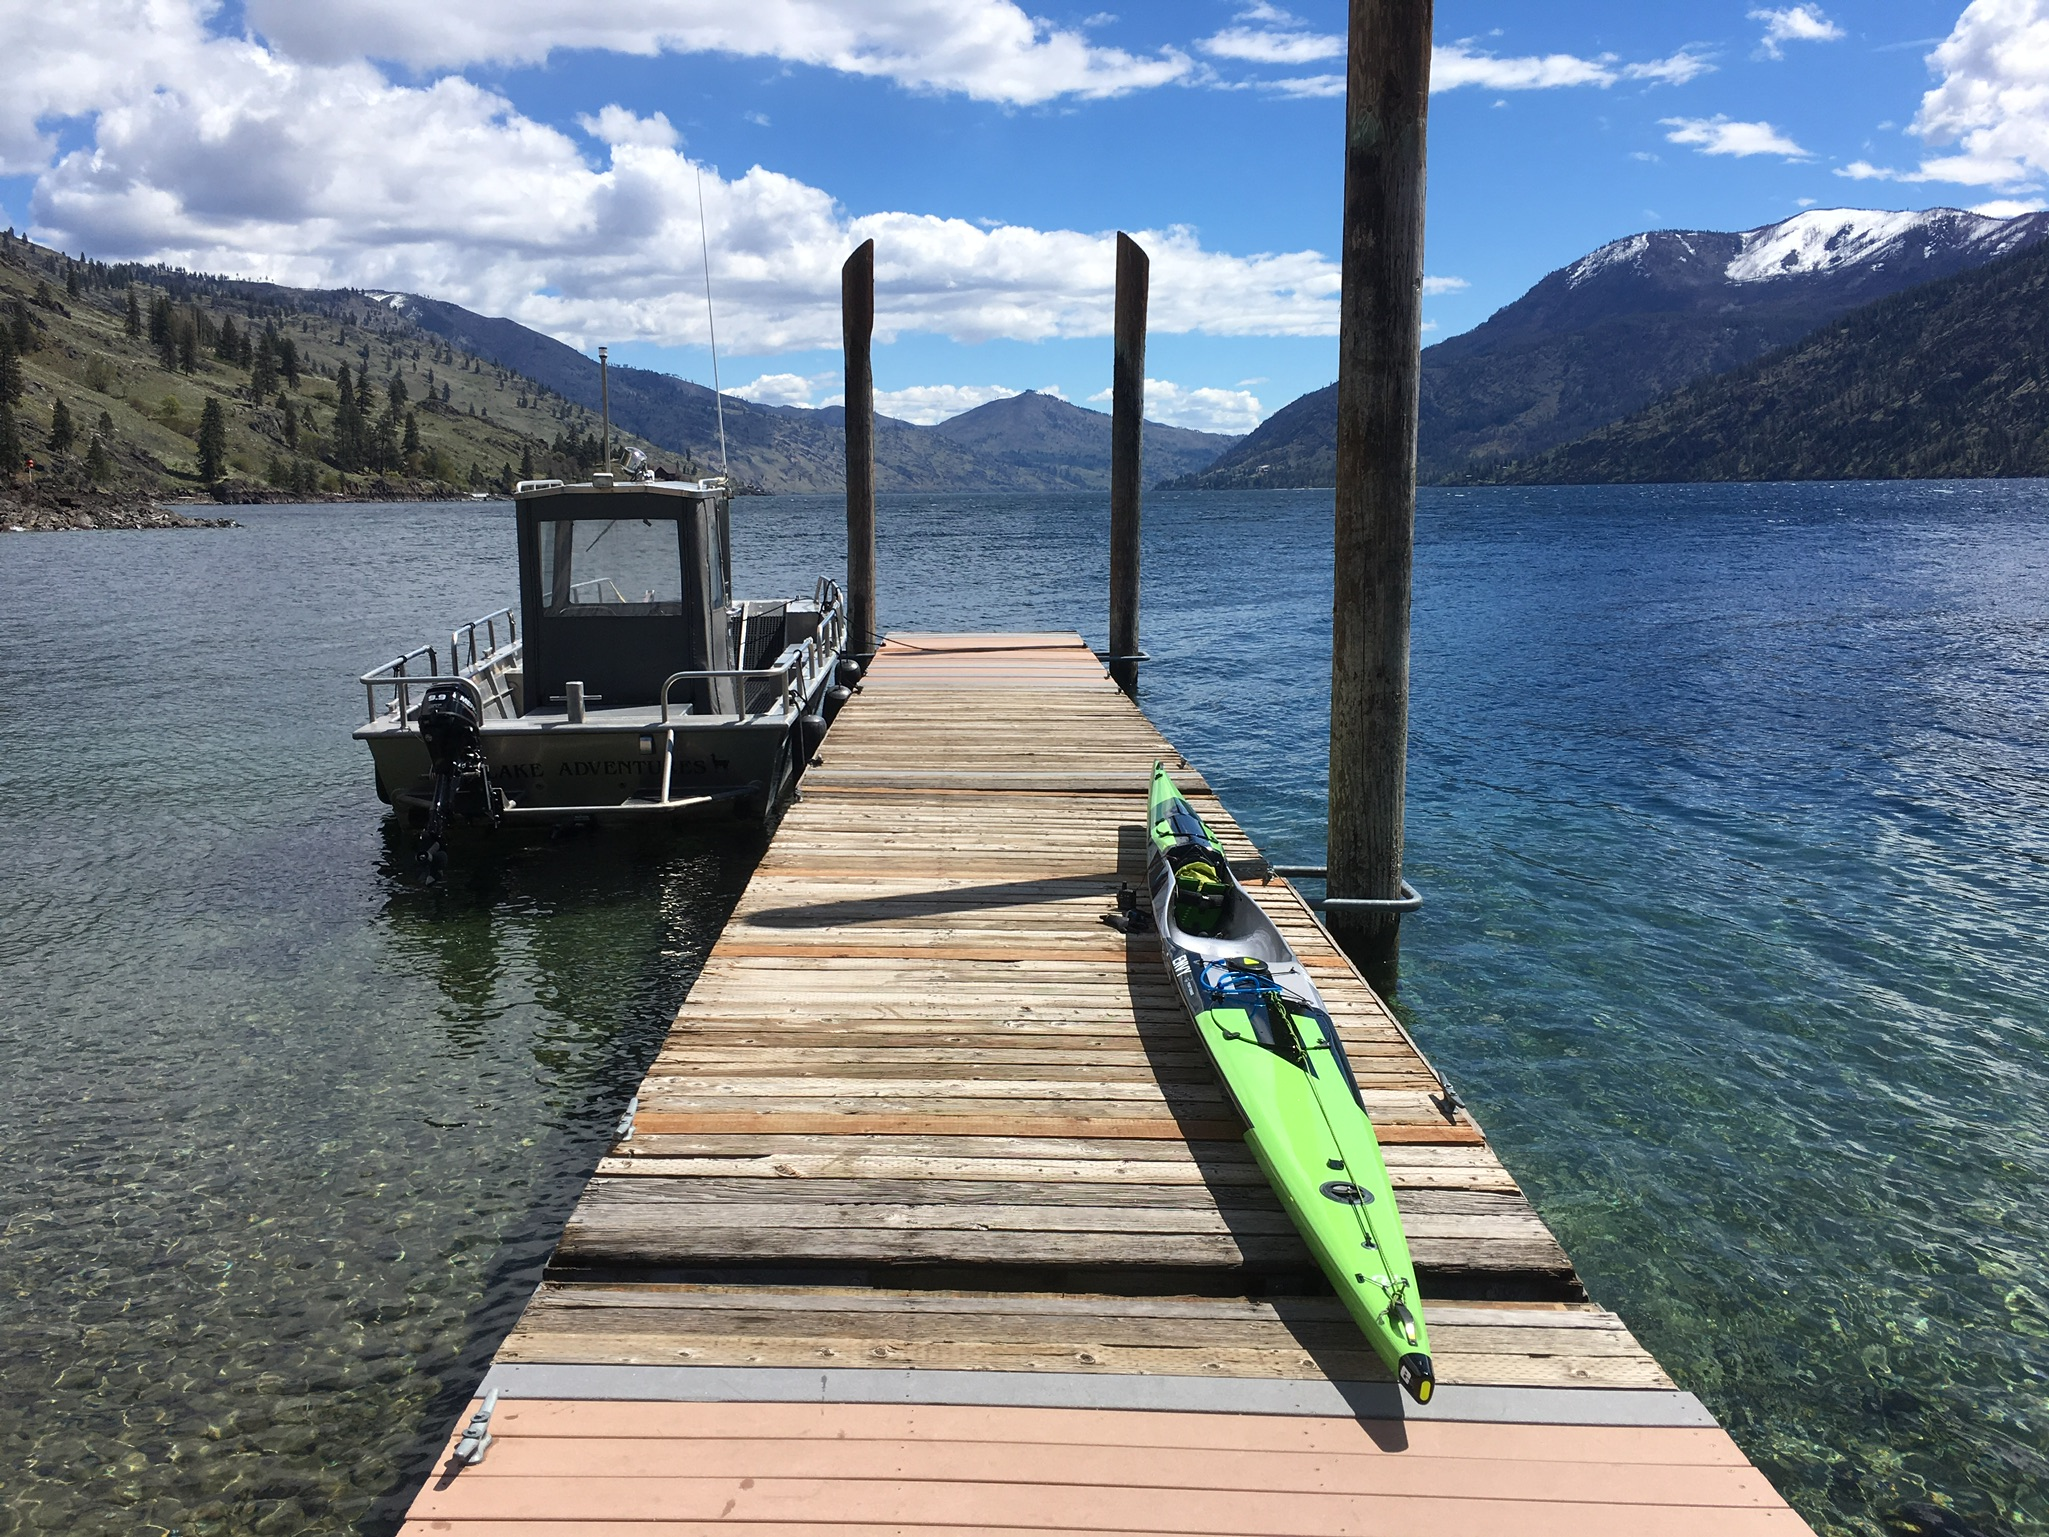 This dock was missing a slat in just the right spot for a surfski rudder to fill.